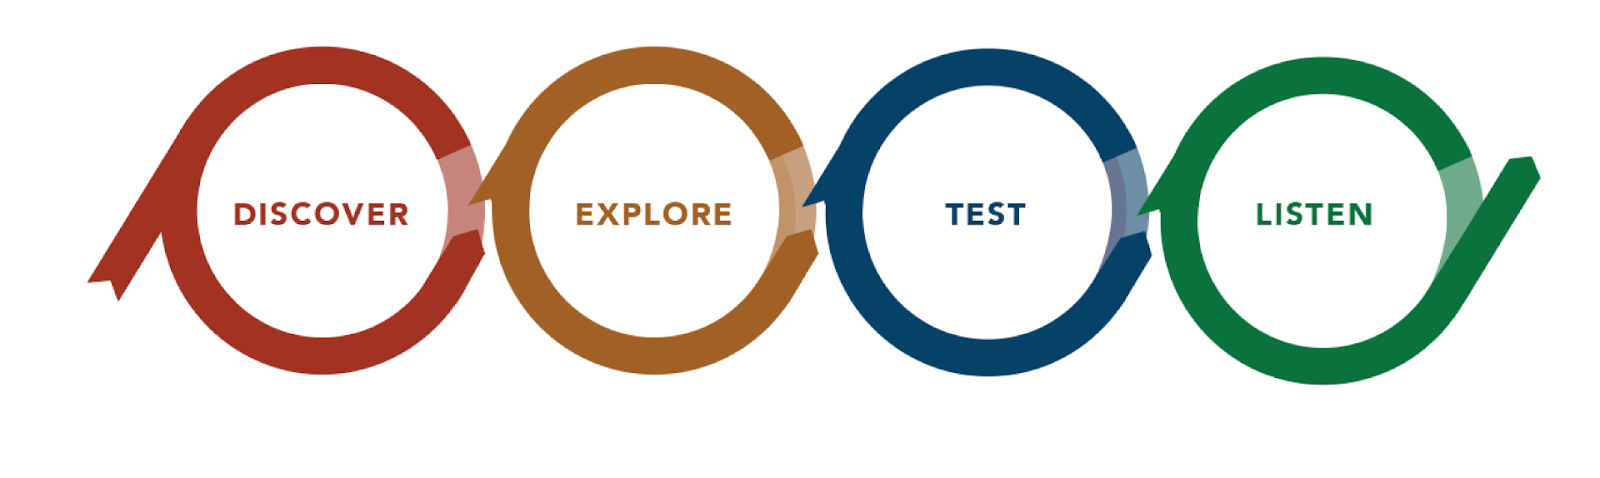 The parts of UX Research: discover, explore, test, listen.